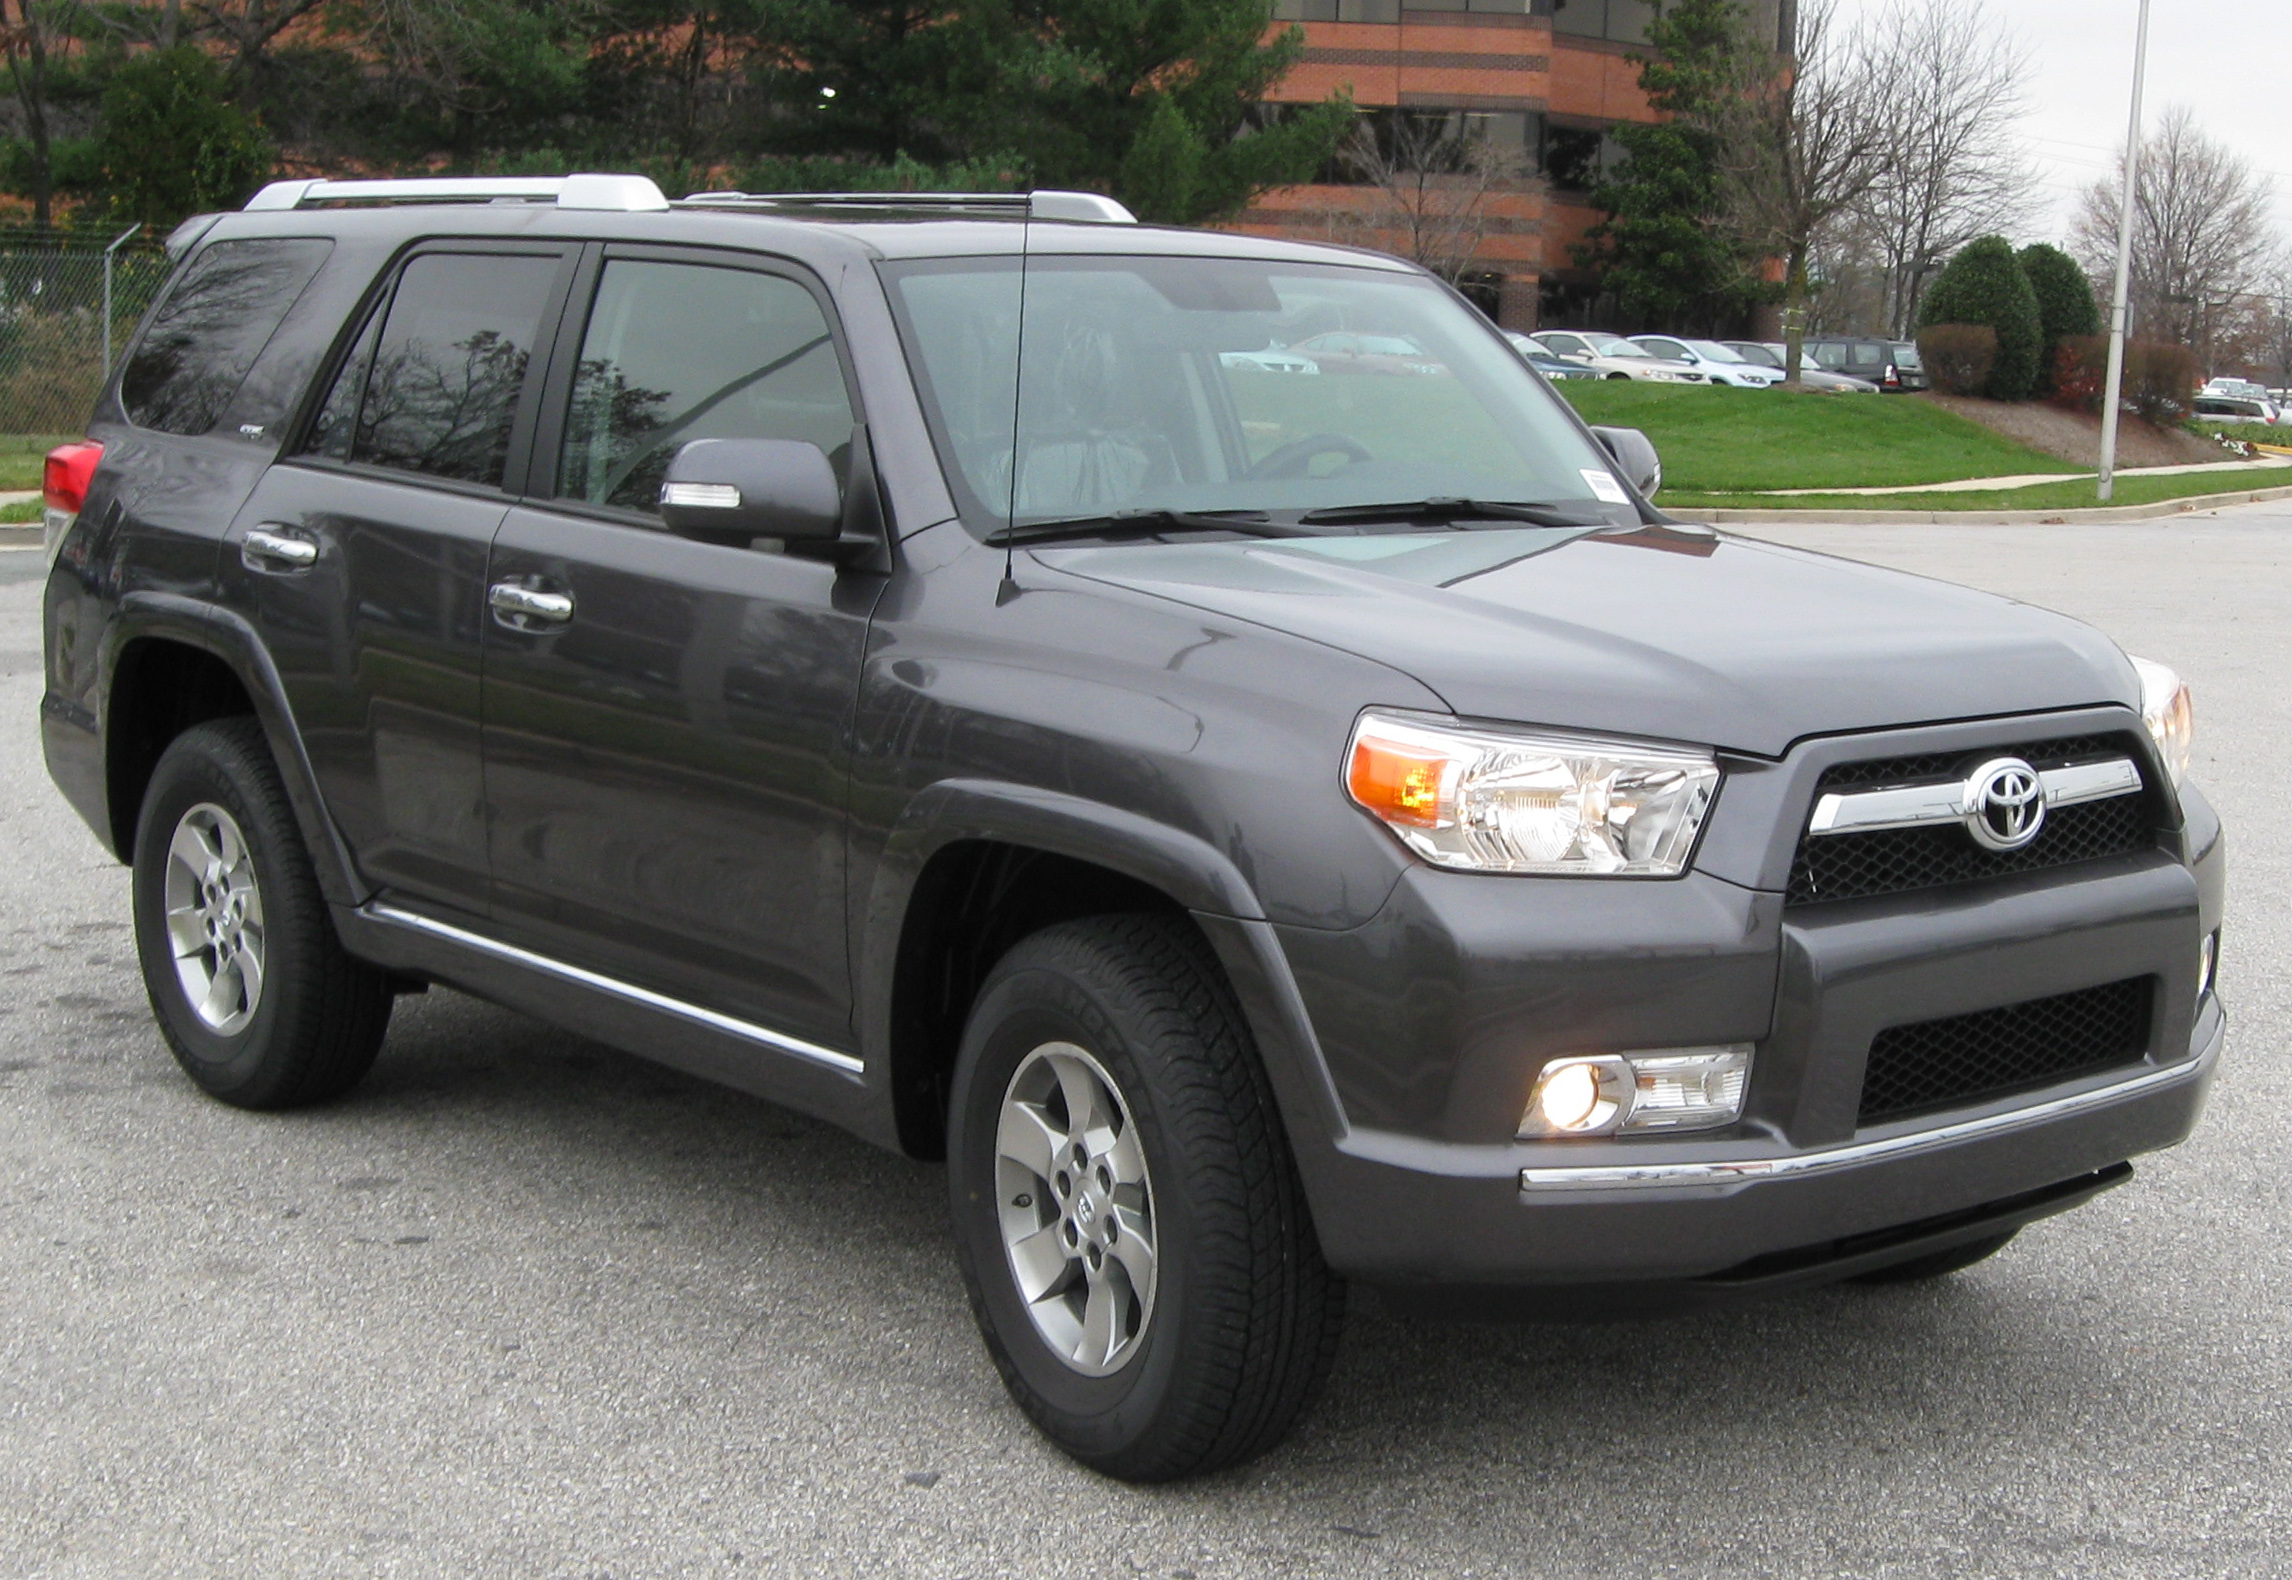 5 Must Have Interior Accessories for Your 4Runner